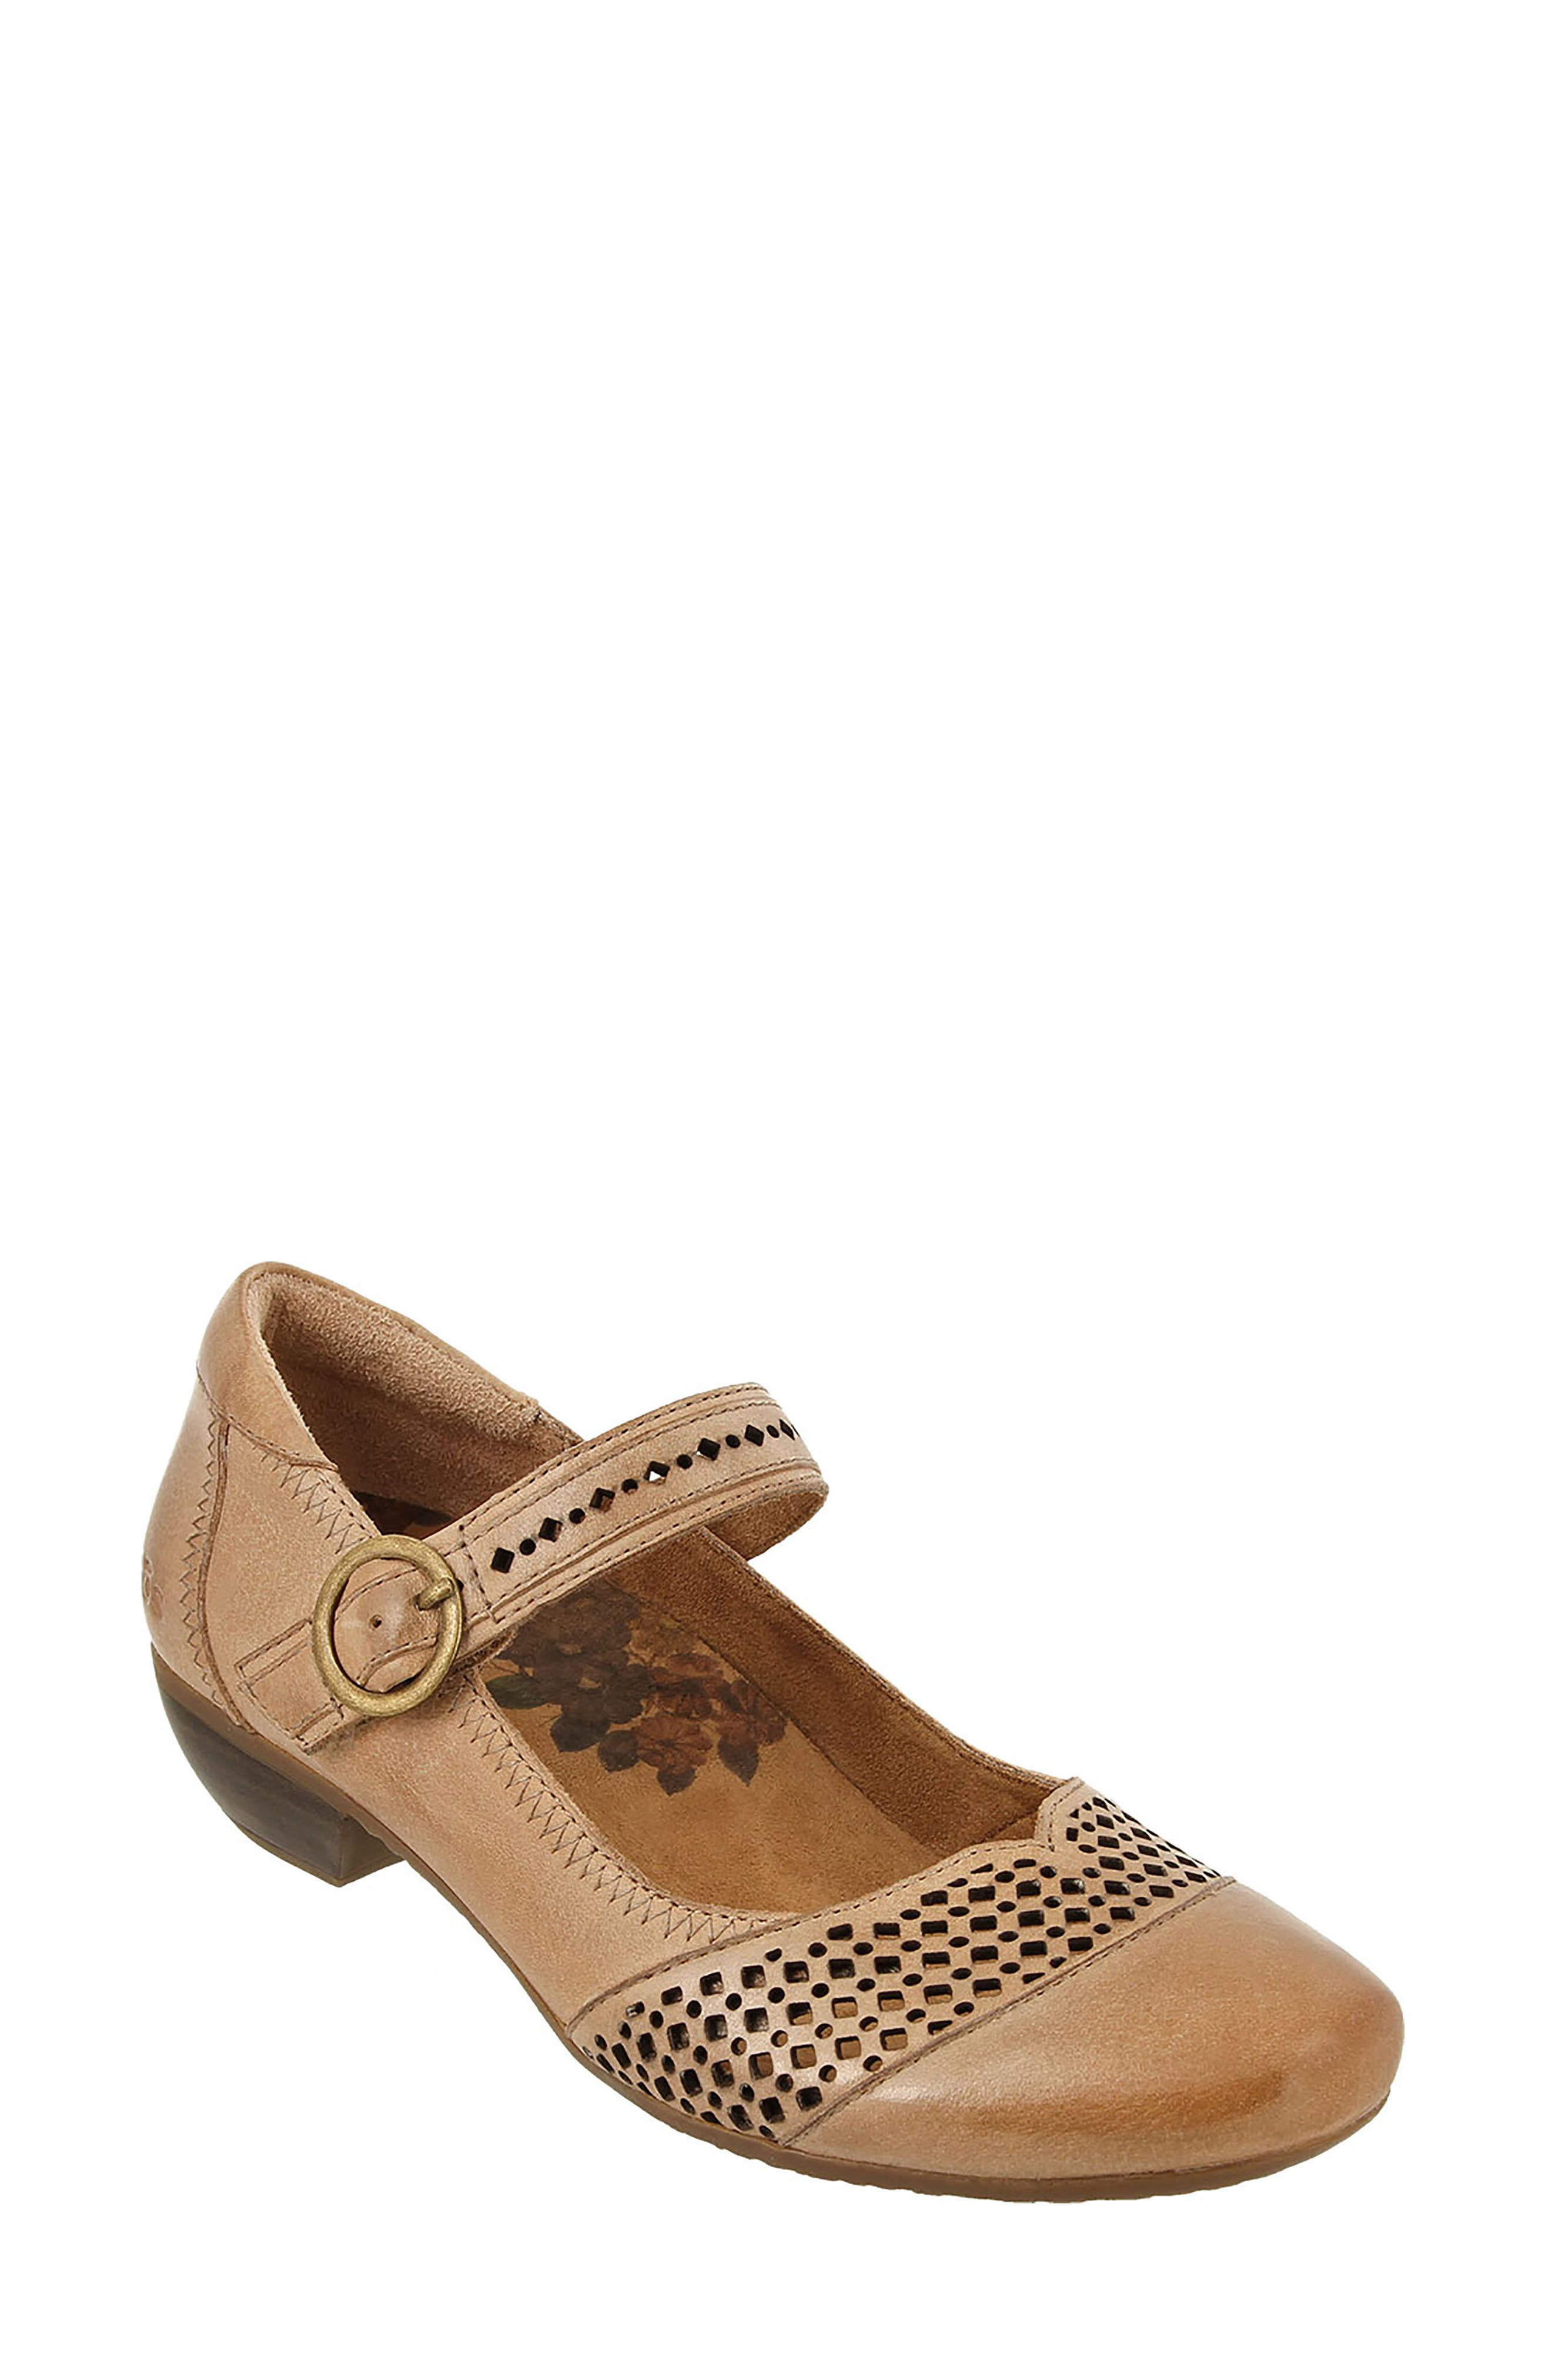 Esteem Mary Jane Pump,                             Main thumbnail 1, color,                             Nude Leather